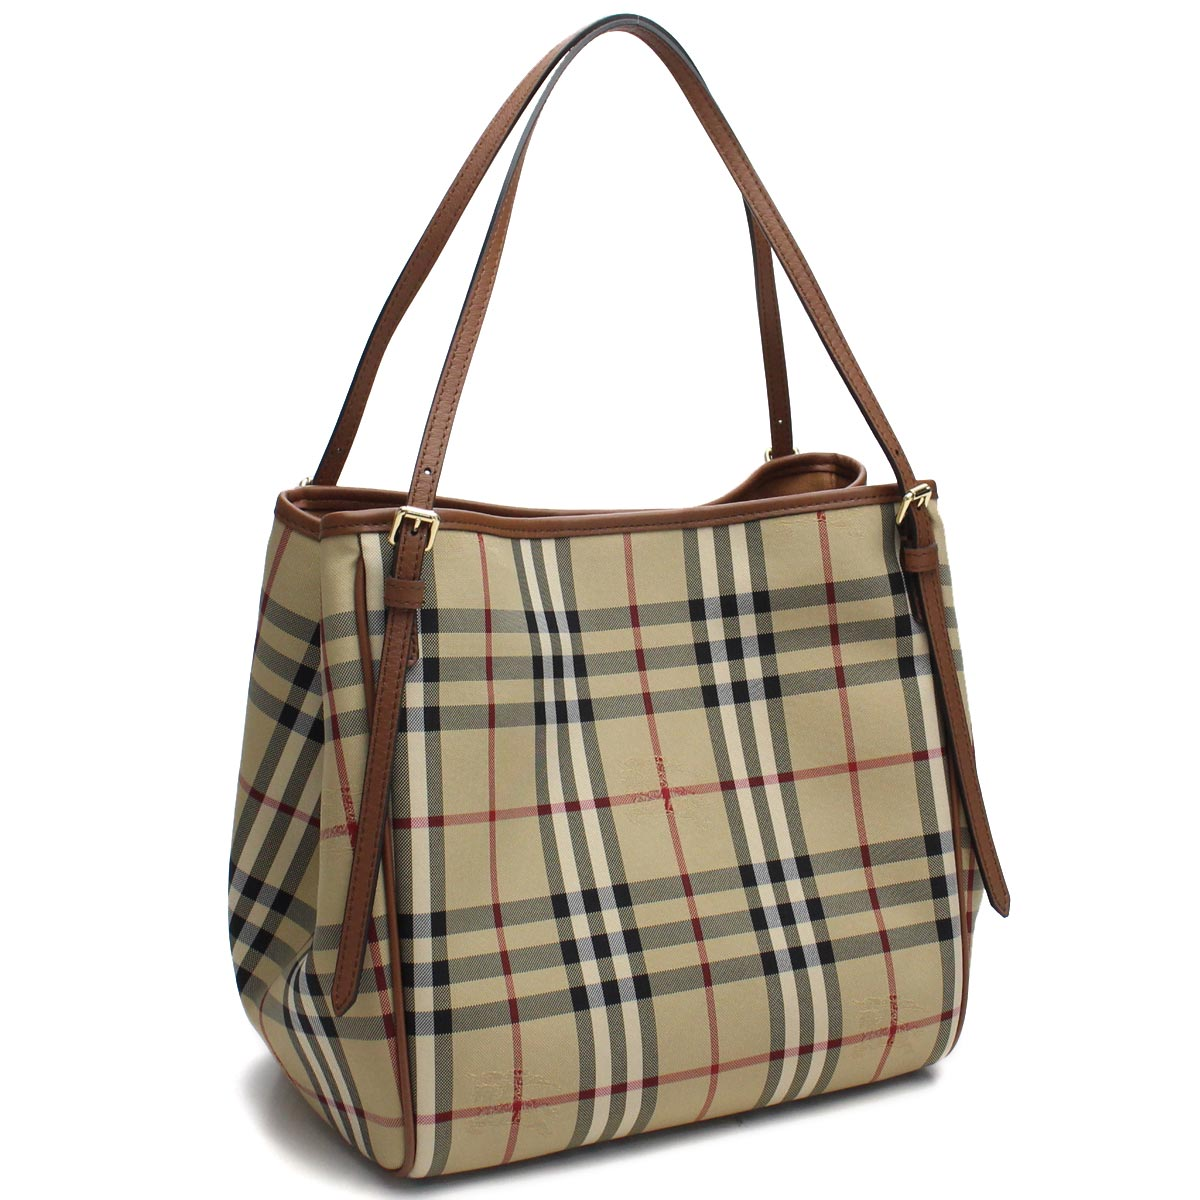 86586000cf Bighit The total brand wholesale: Multicolored of Burberry (BURBERRY) SM CANTER  Burberry check tote bag 4028897 HONEY/TAN Brown line | Rakuten Global Market